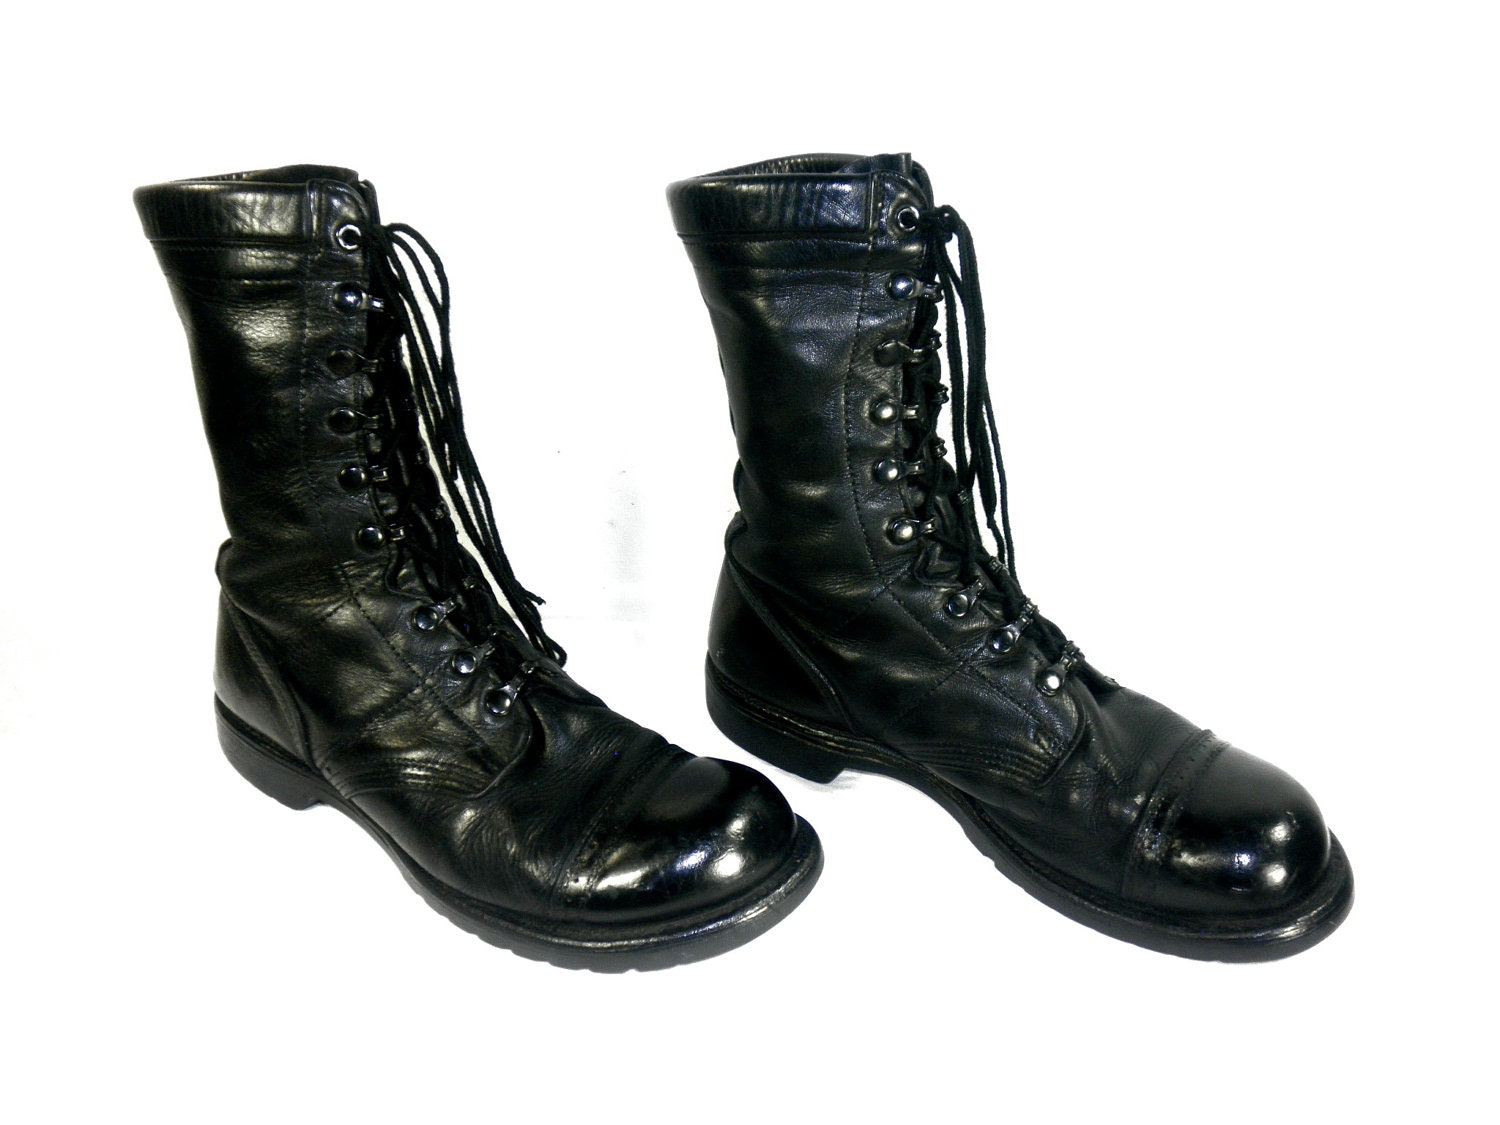 corcoran jump boots black leather lace up by desertmoss on